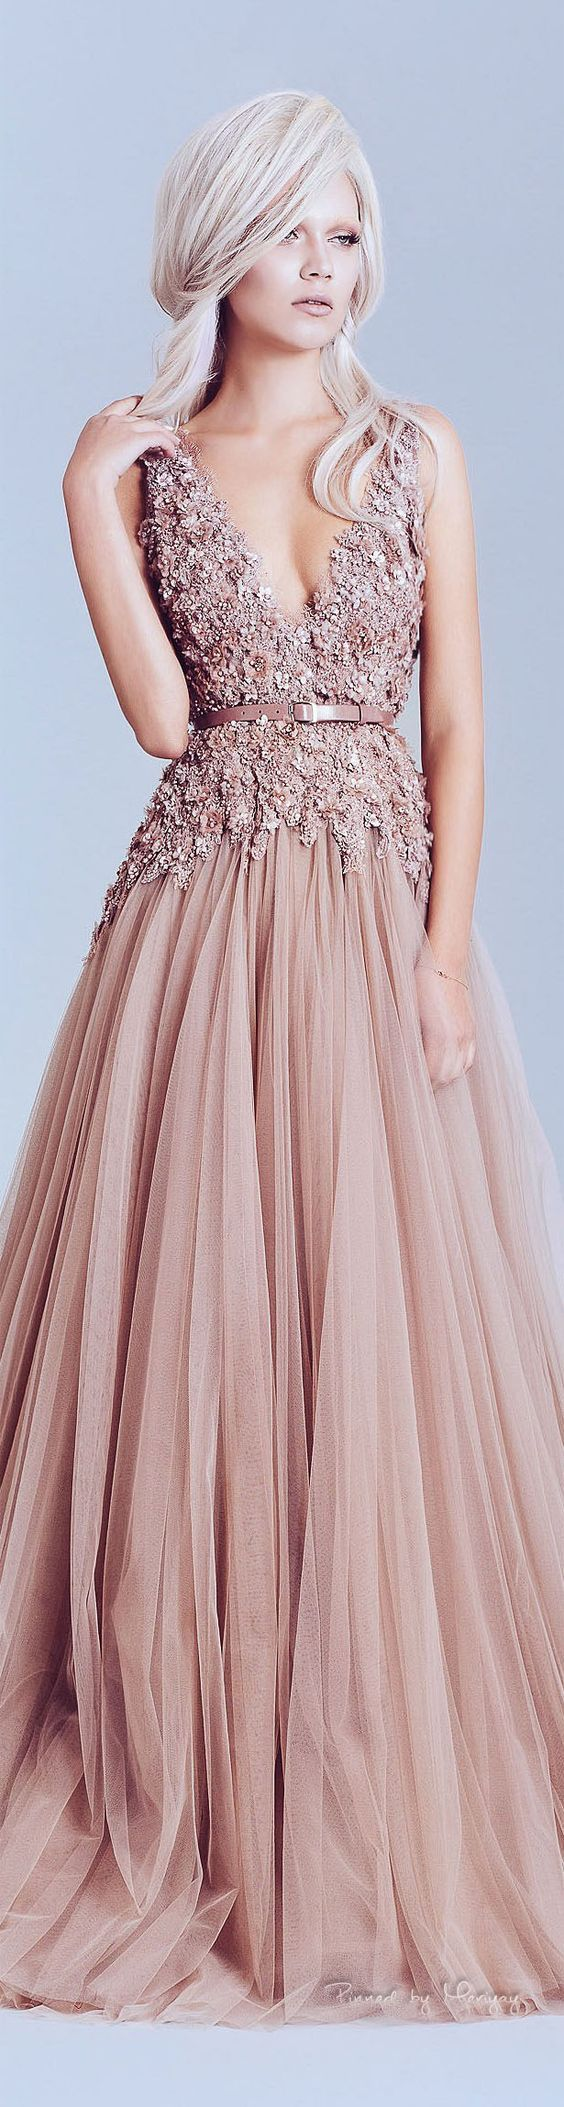 Alfazairy Spring-summer 2015. #gorgeous #dress bridesmaid dresses, sequin bridesmaid dresses: